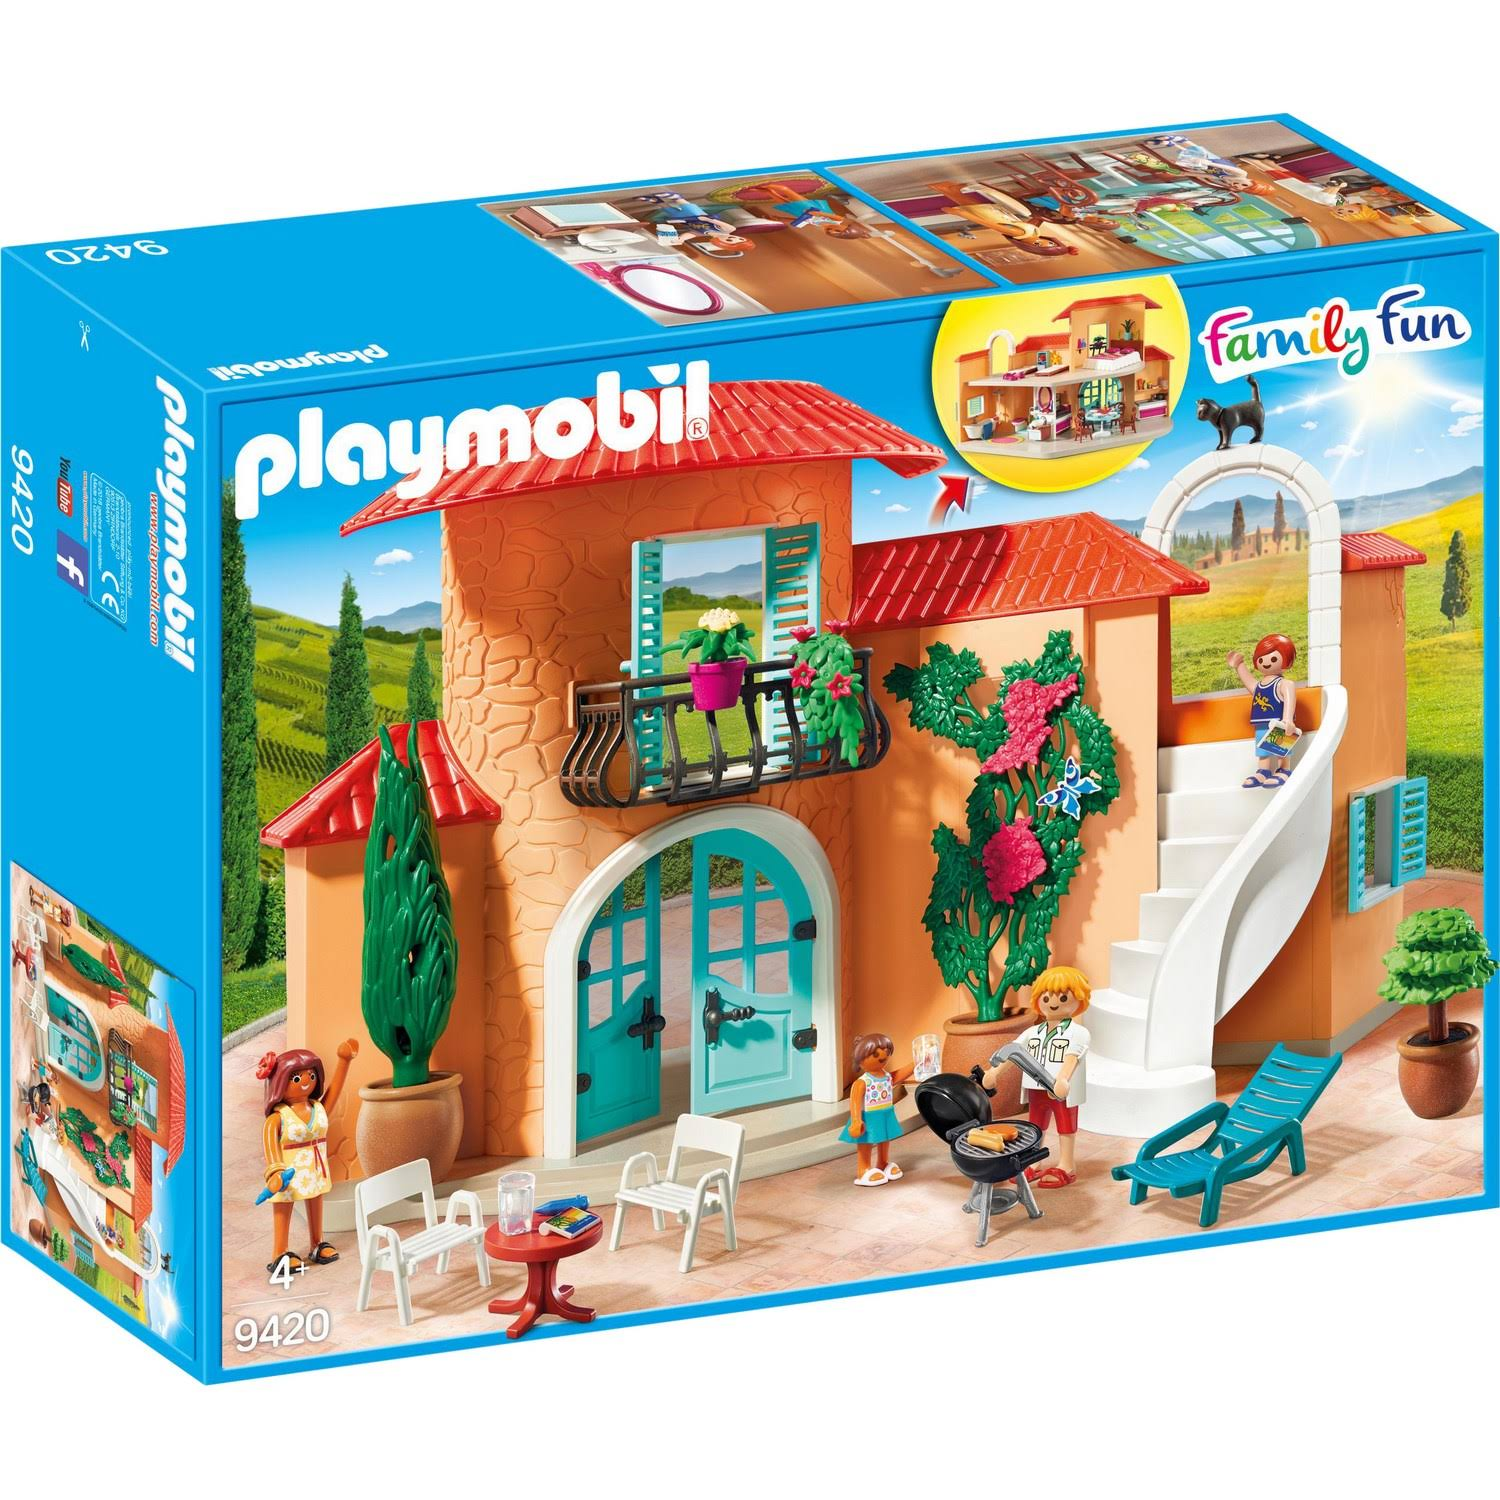 Playmobil 9420 Family Fun Summer Villa Set